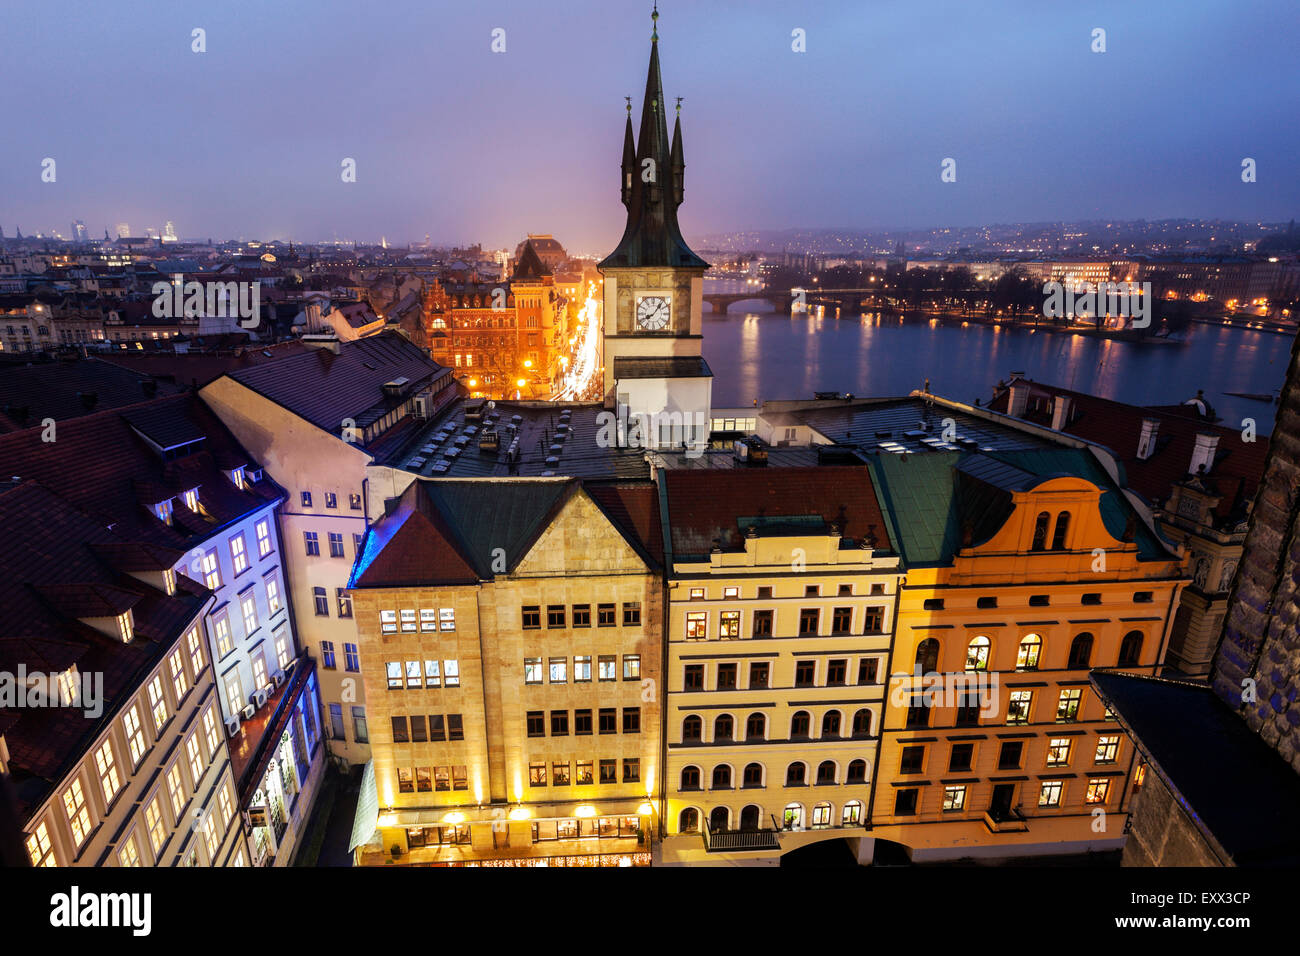 Old town tower by Vltava River at sunset - Stock Image